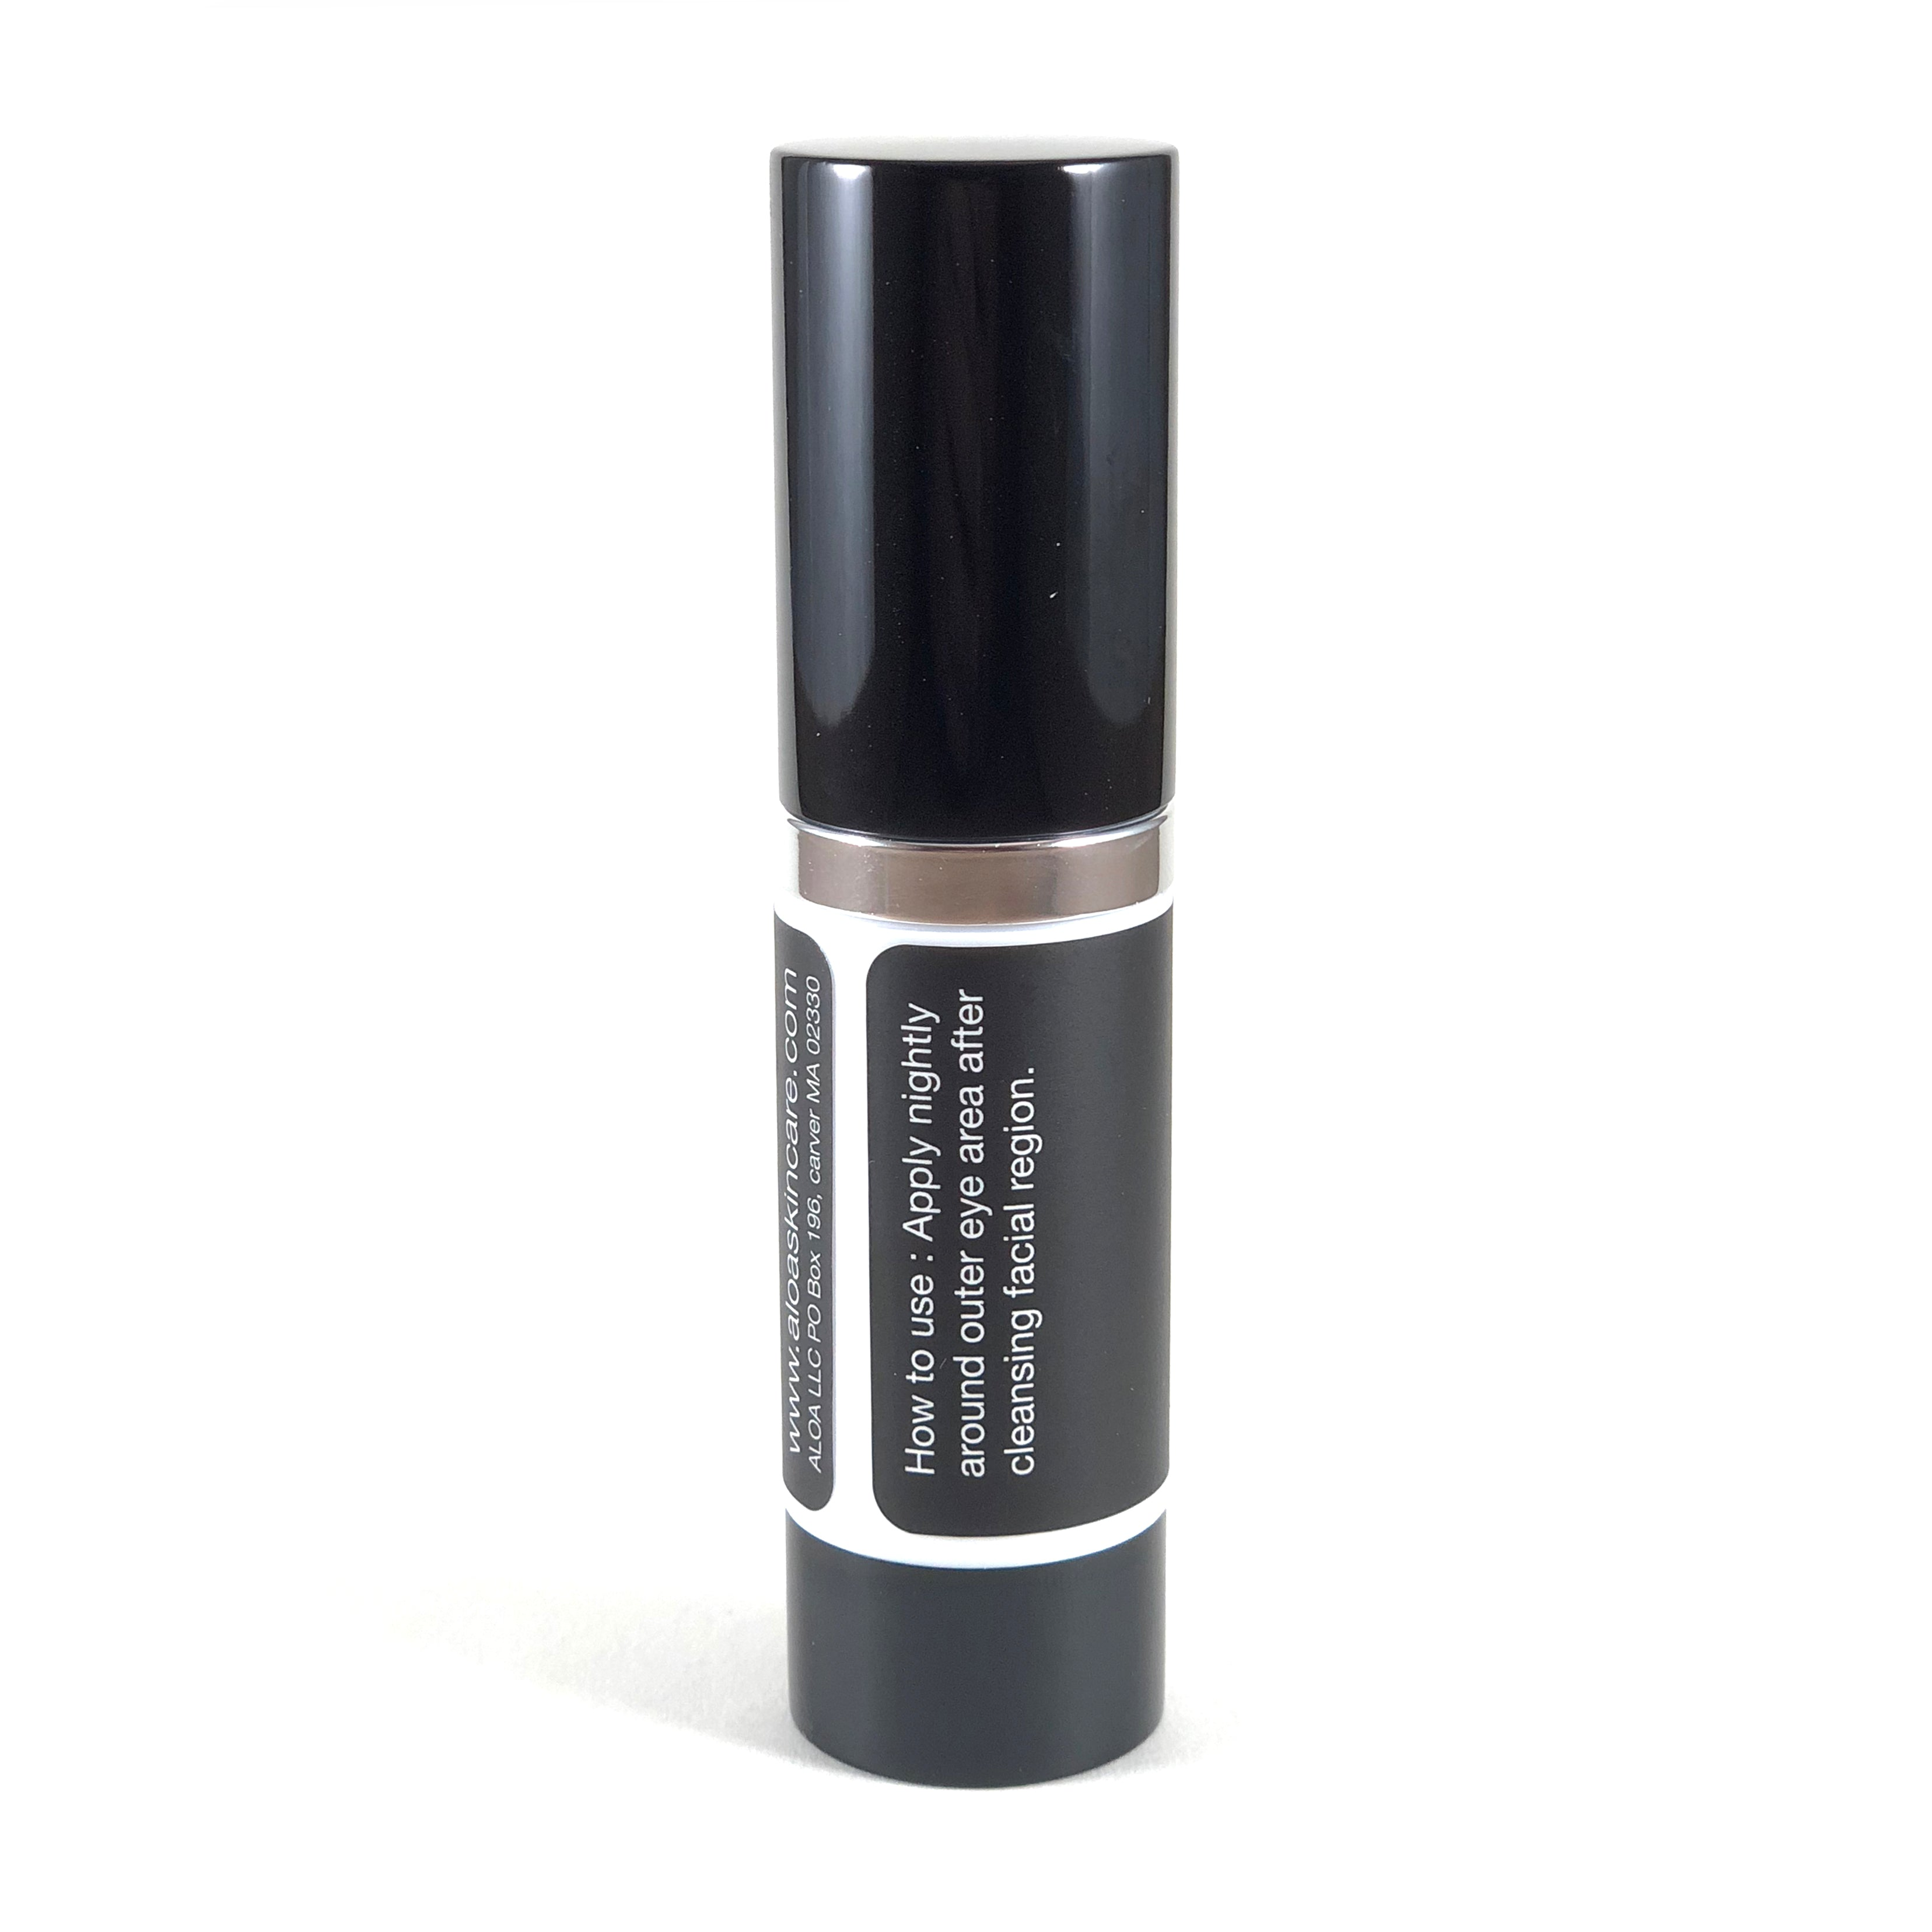 Eye Serum (Nighttime Repair)